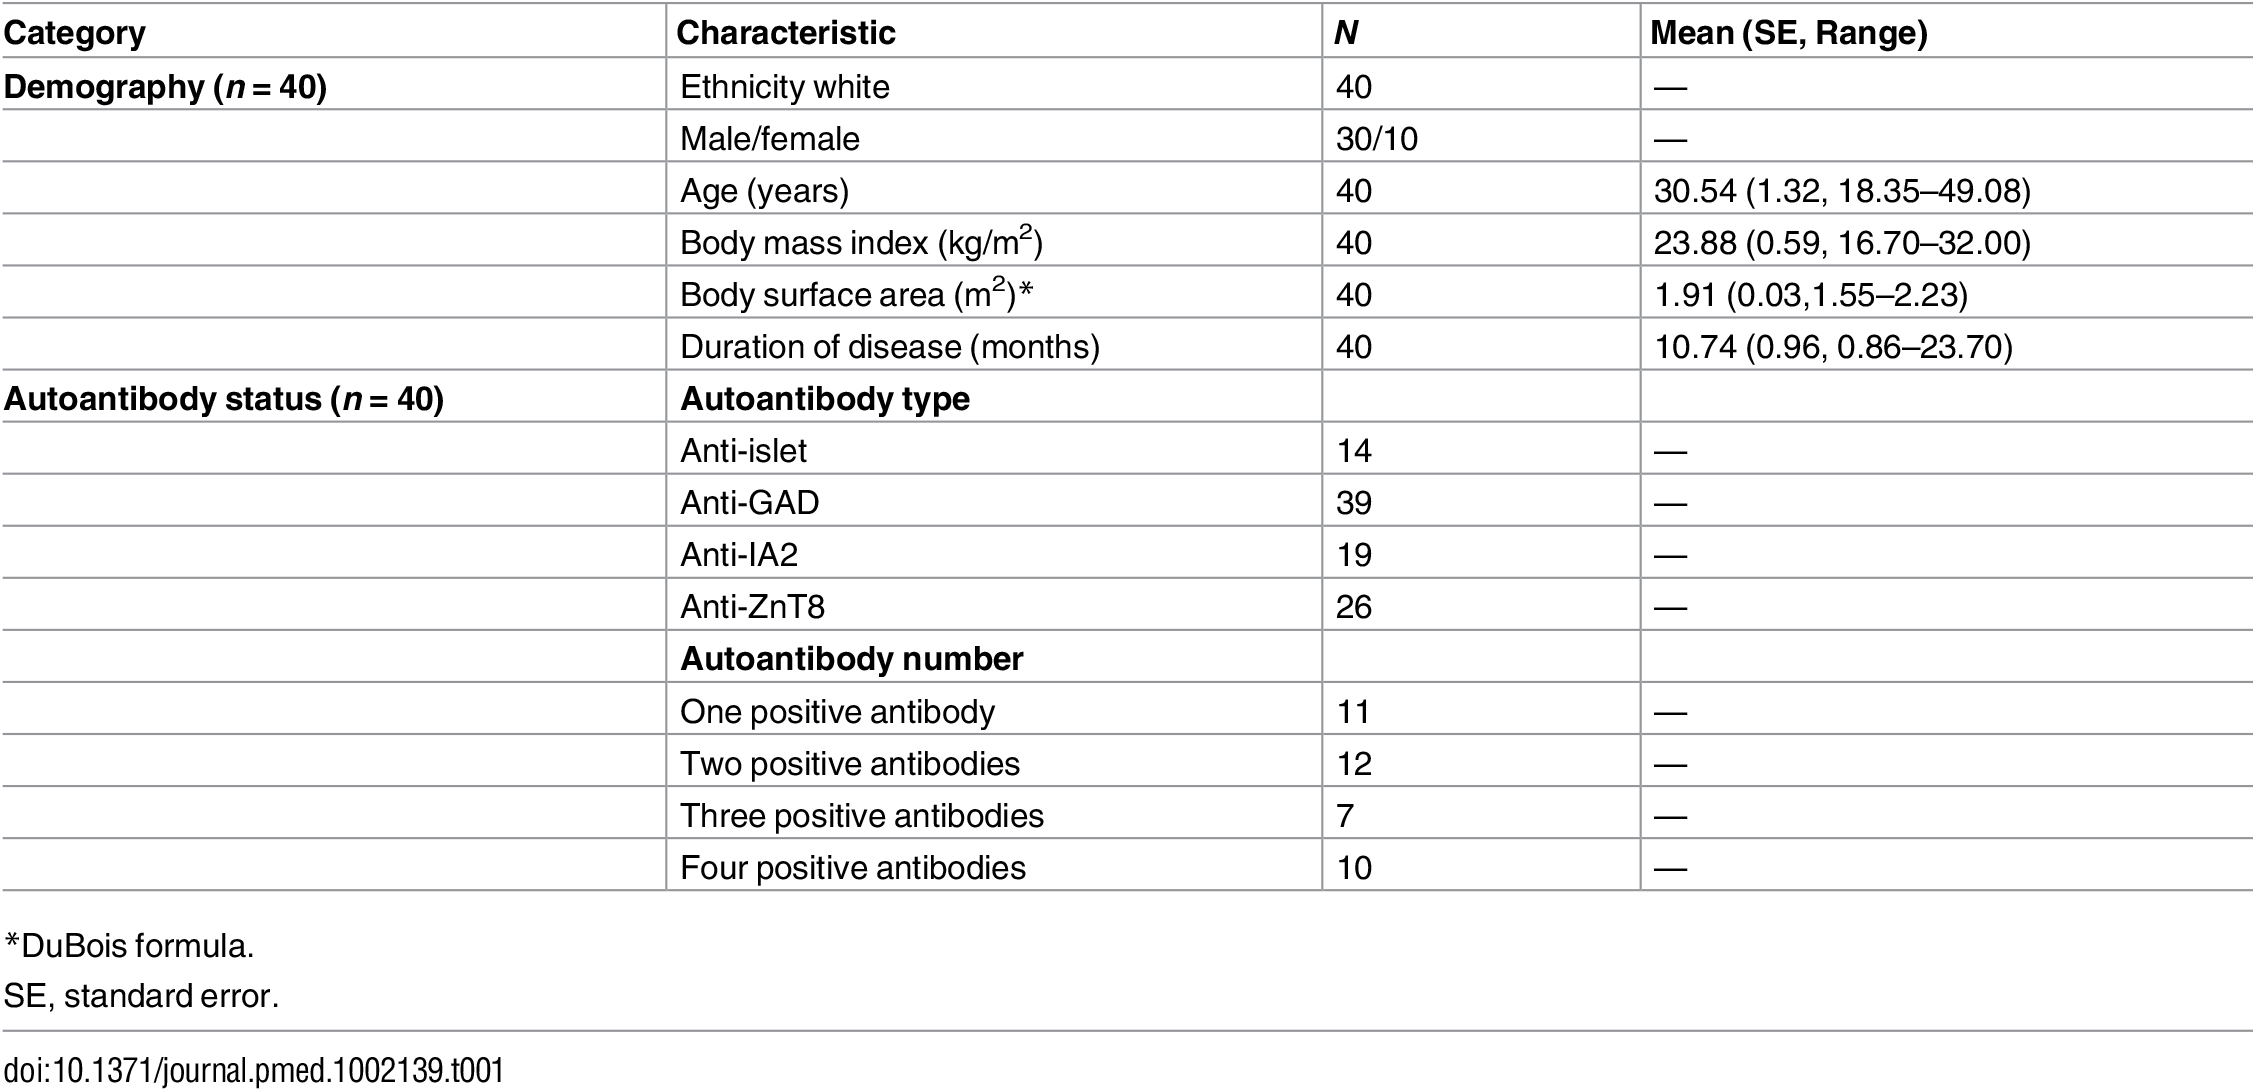 Participant characteristics and autoantibody status.